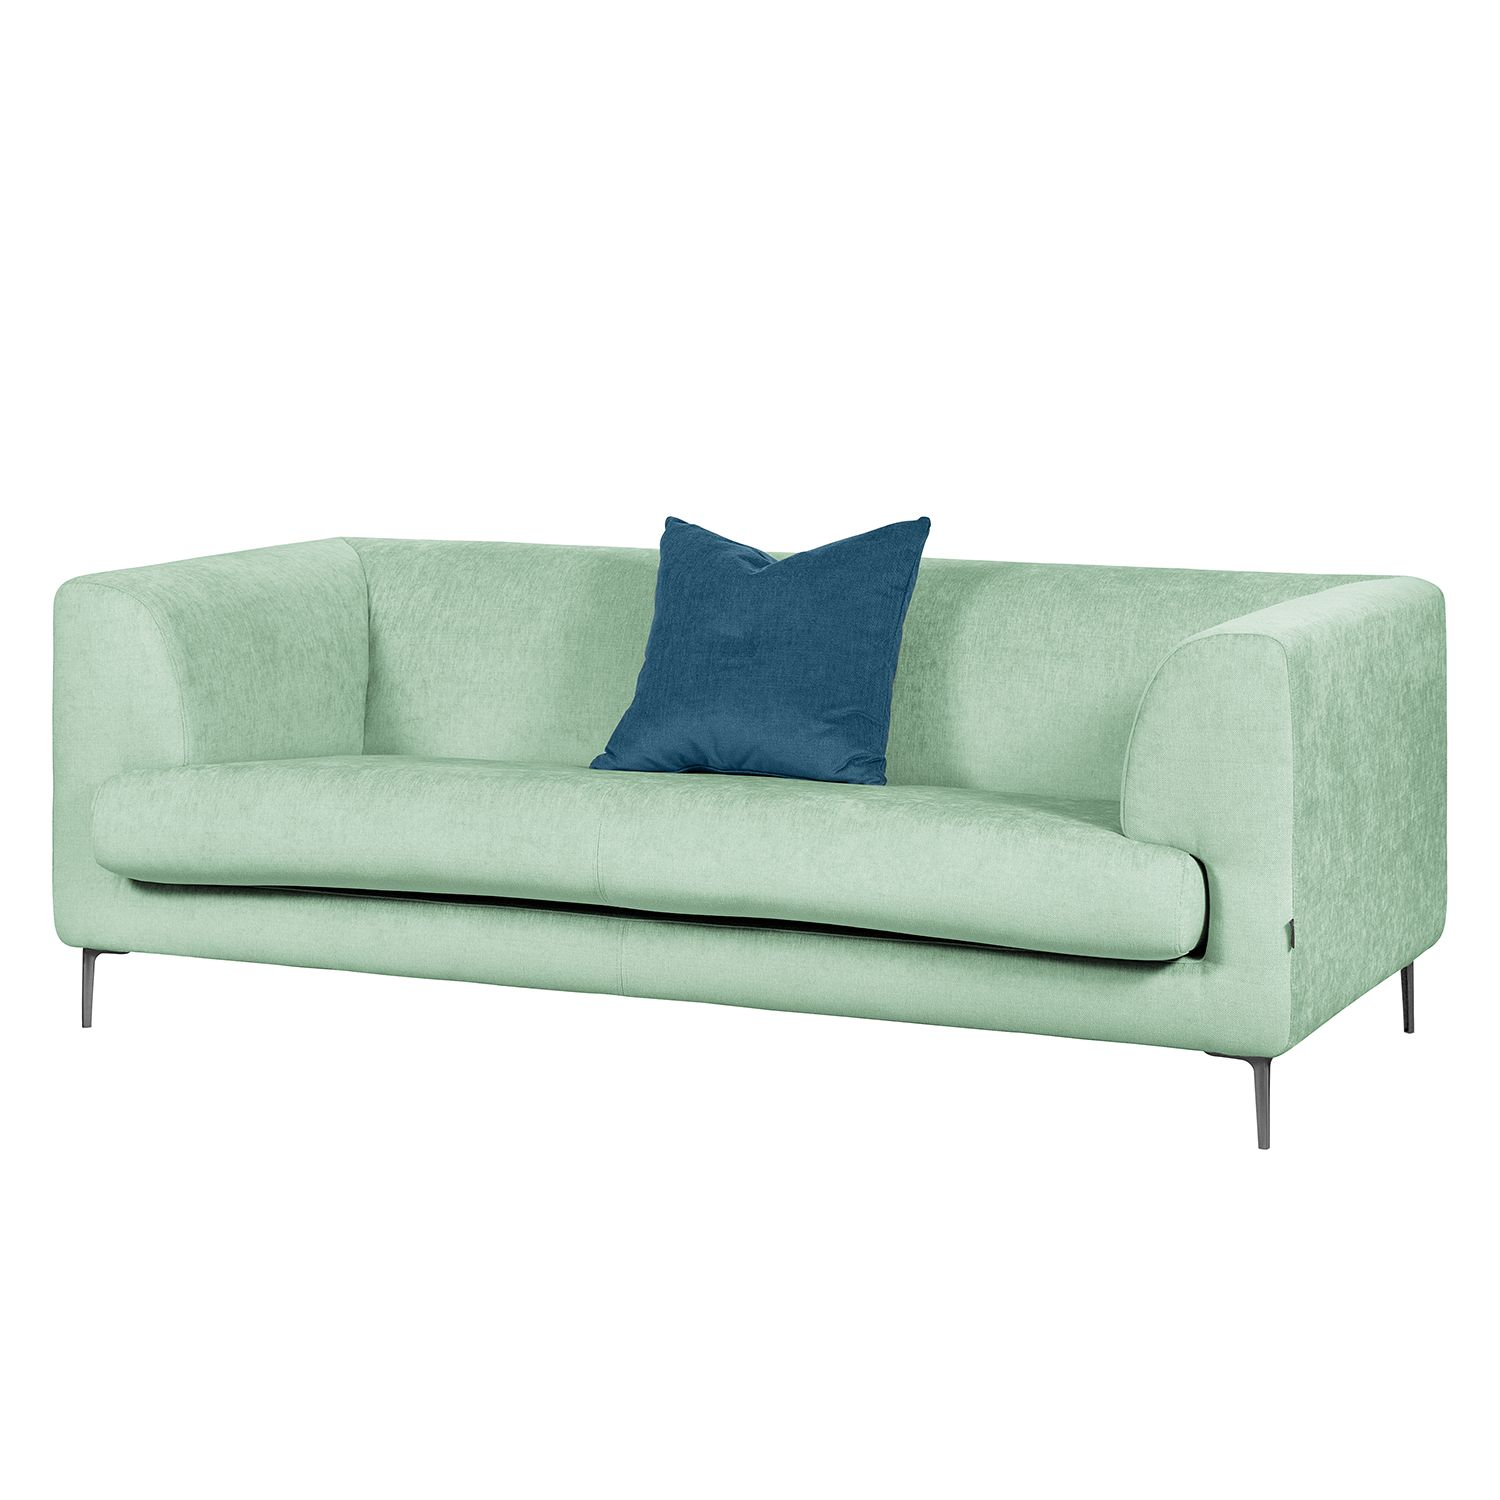 Sofa Sombret (2,5-Sitzer) - Webstoff - Mint, Says Who